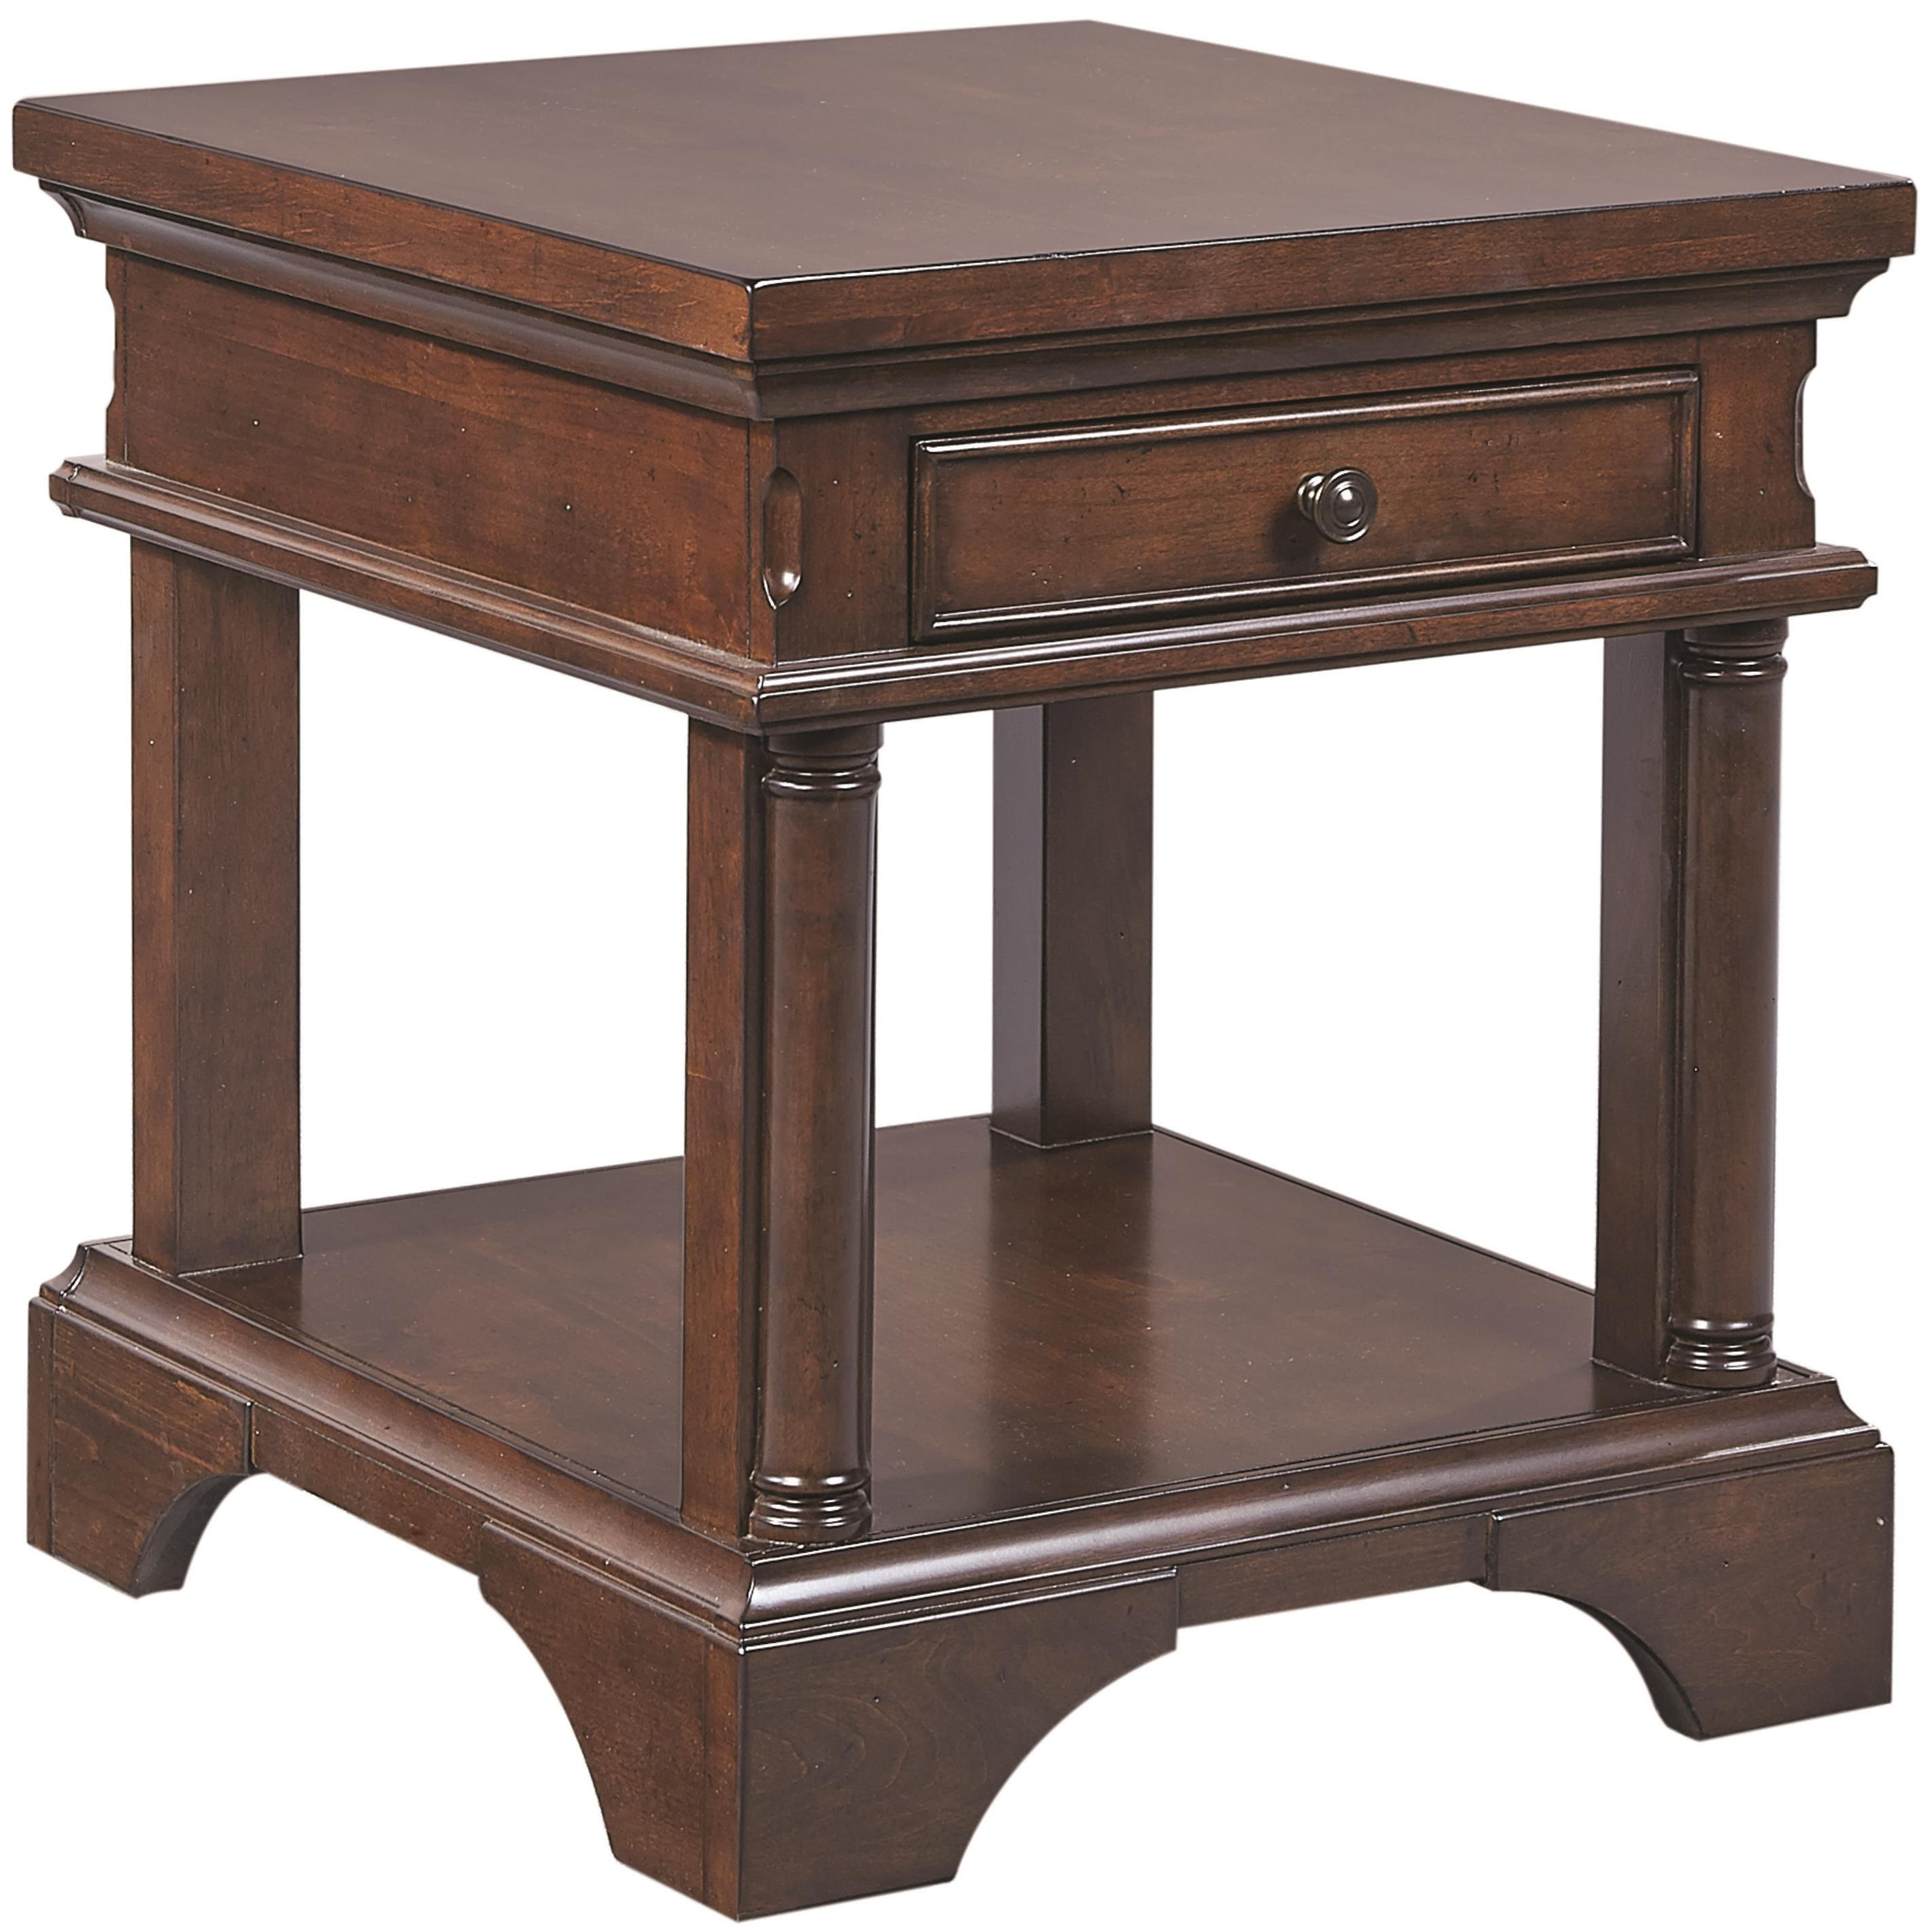 Aspenhome Bancroft End Table with Power - Item Number: I08-9140